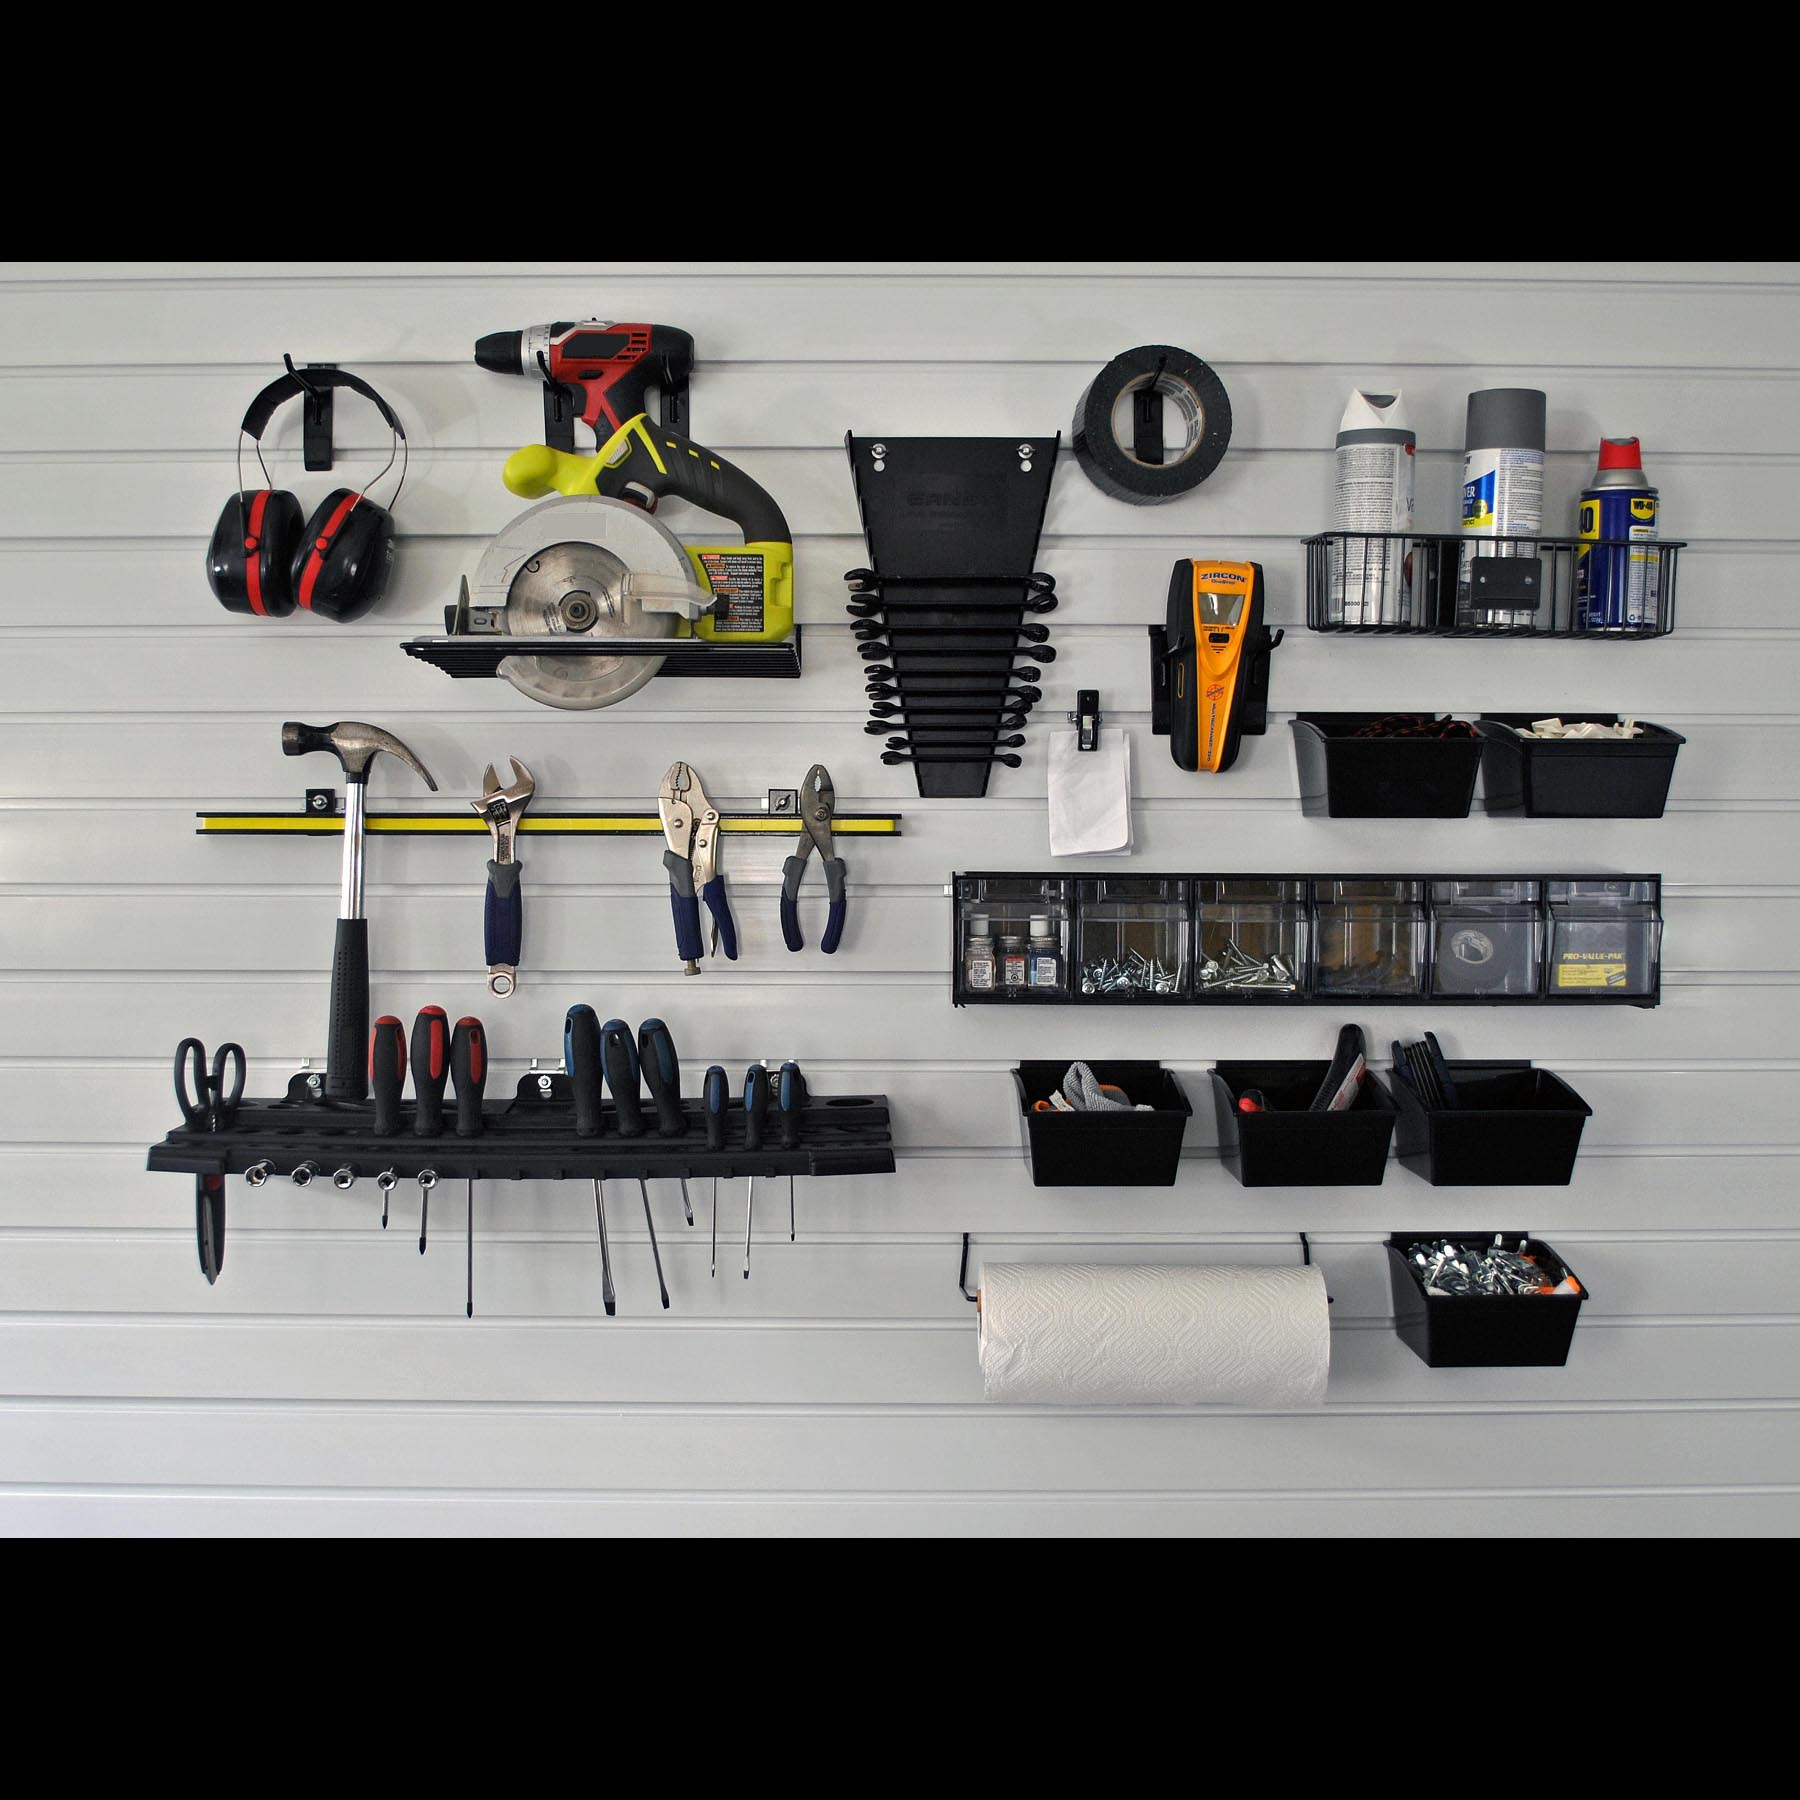 Slatwall Work Center Kit